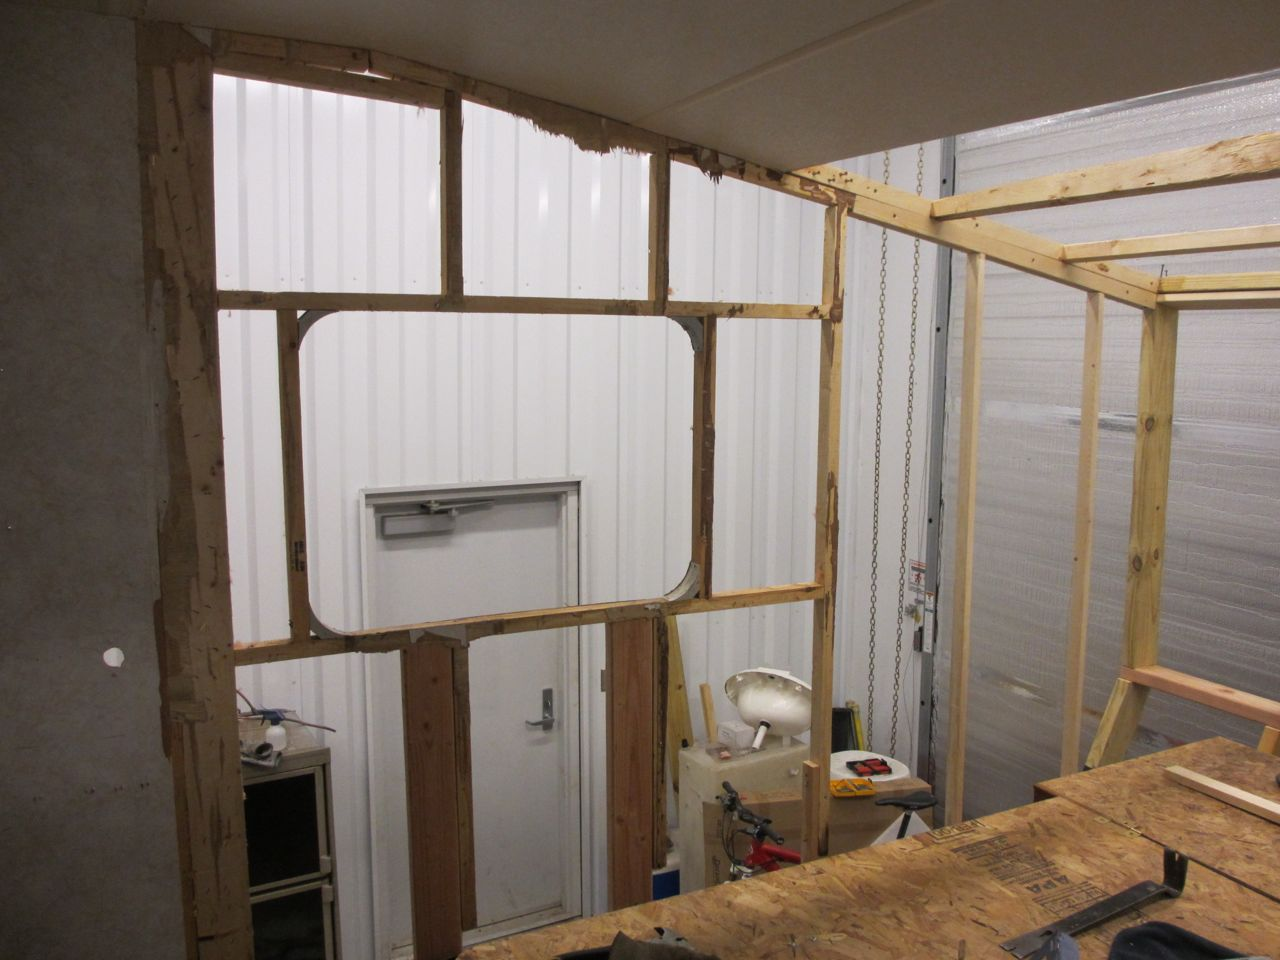 Inside view of the driver side bedroom wall.